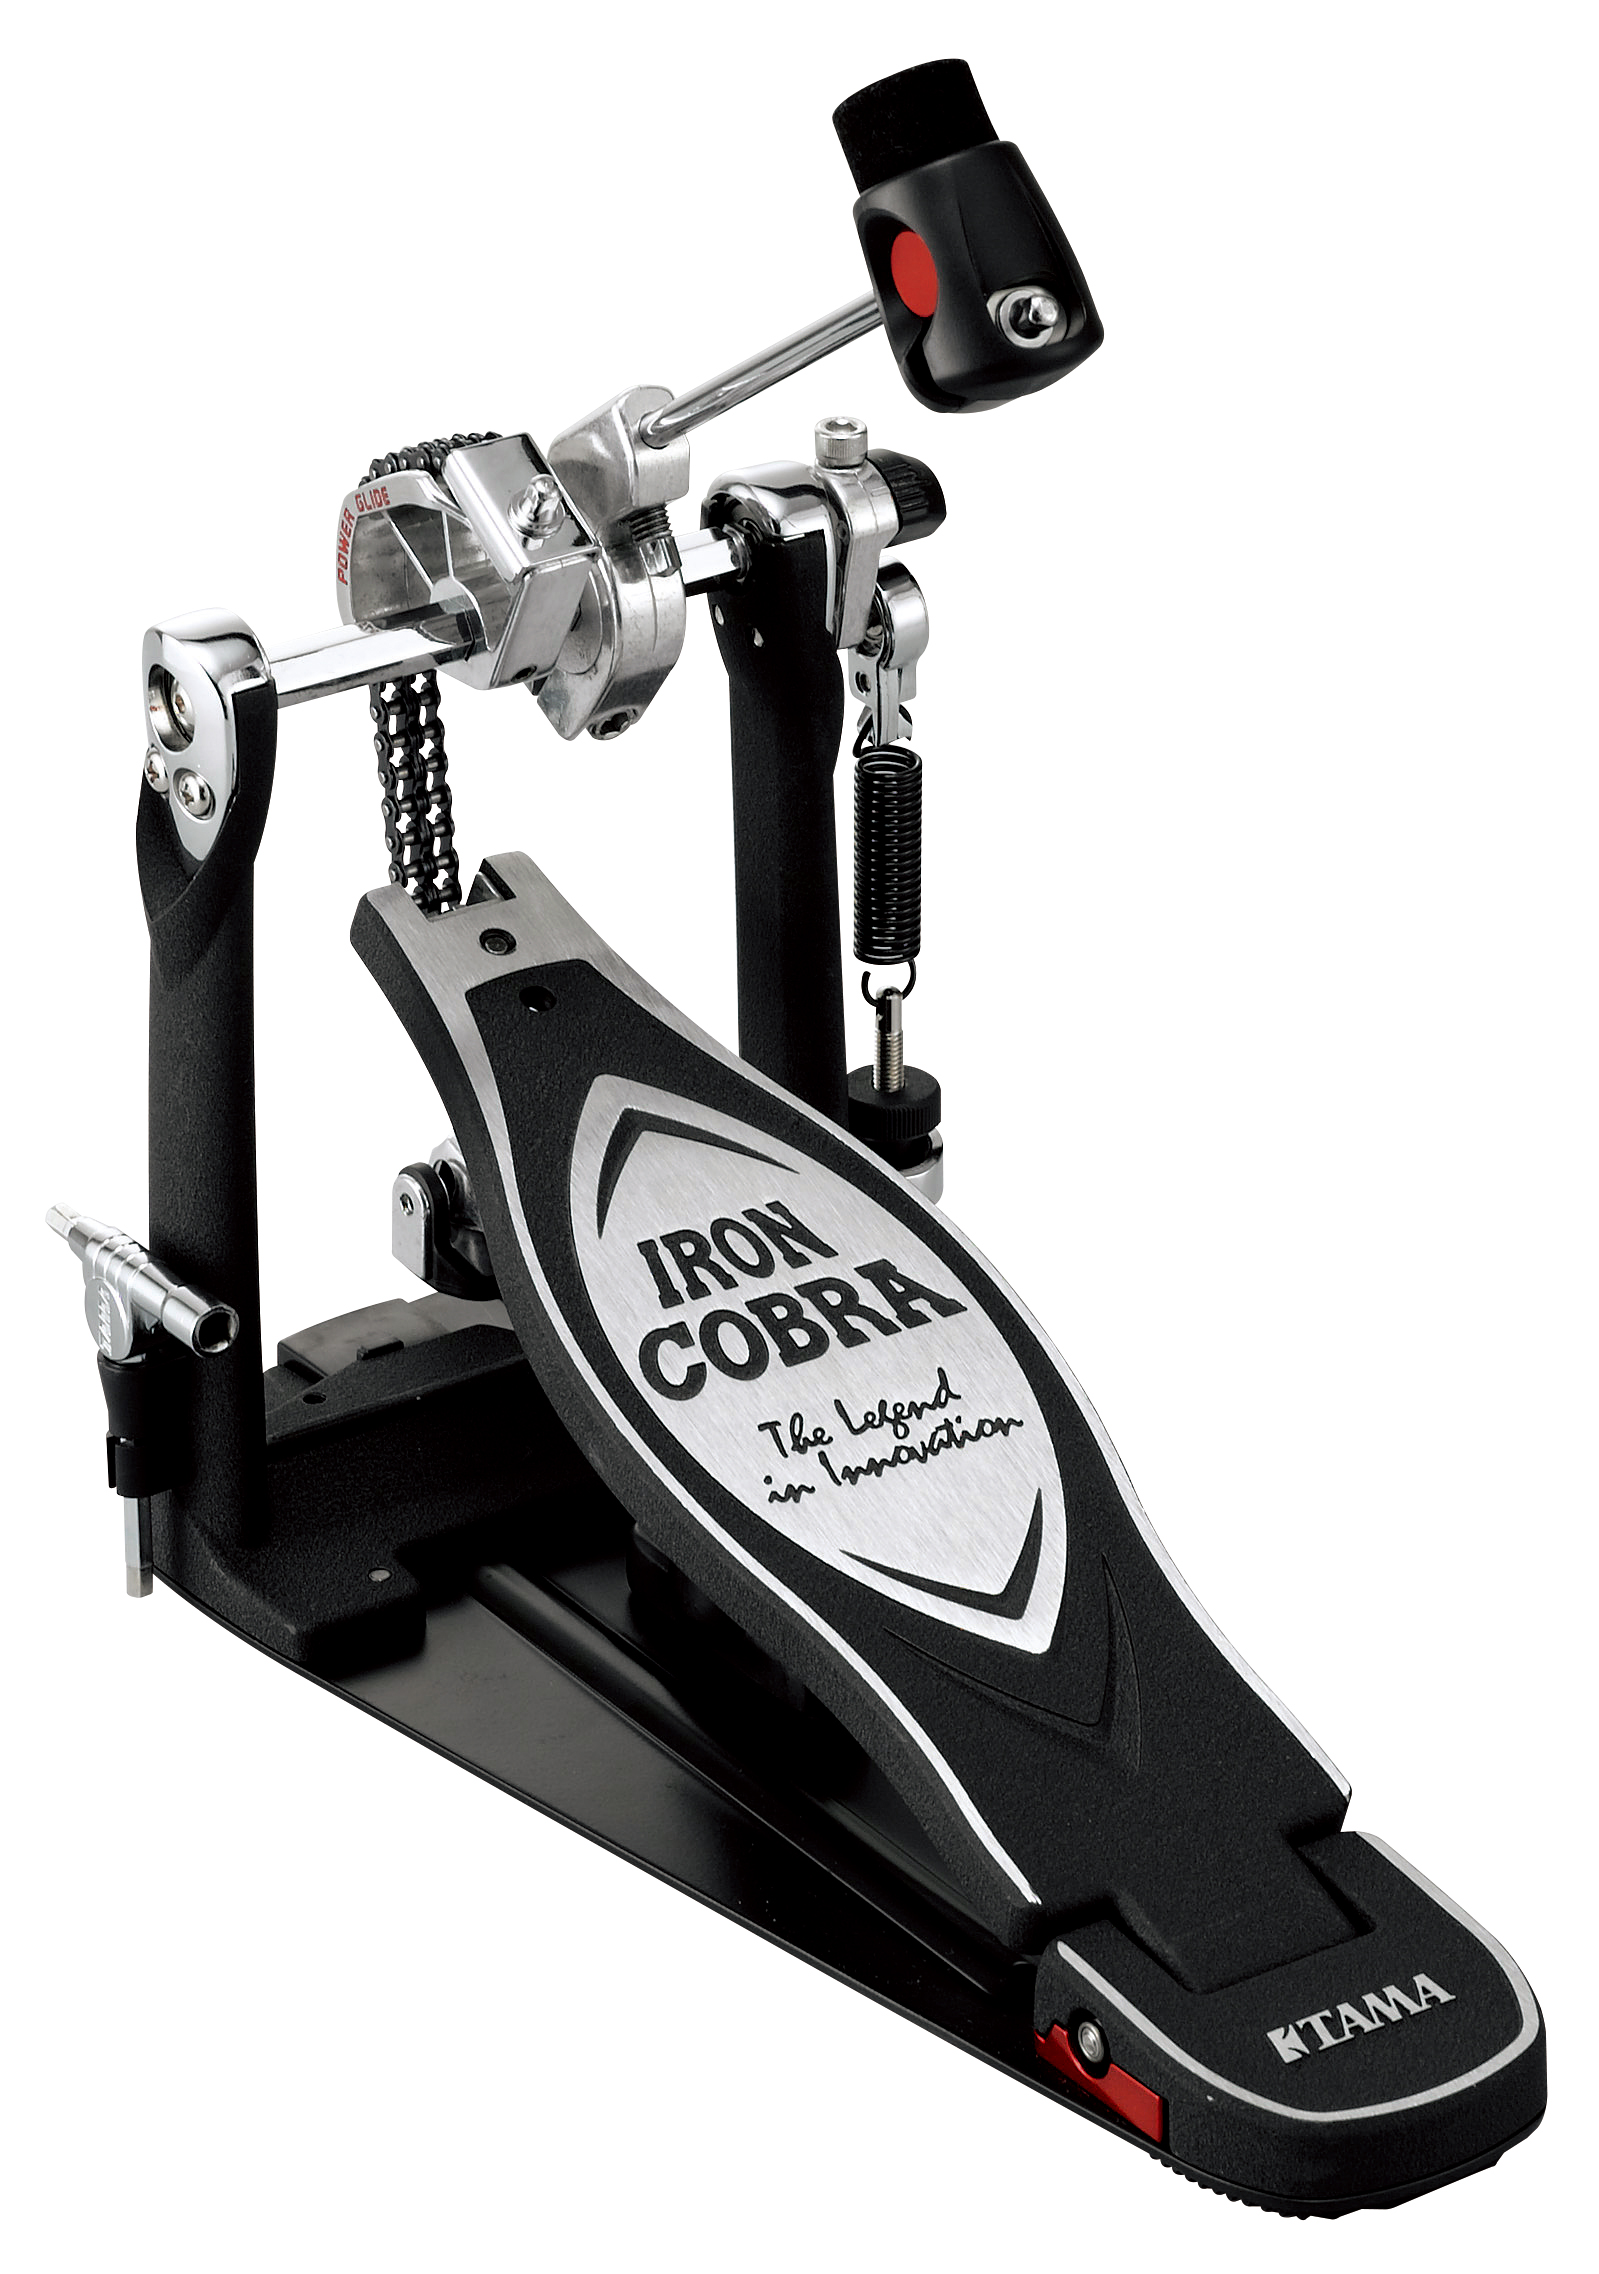 TAMA presents their new Iron Cobra and Speed Cobra drum pedals